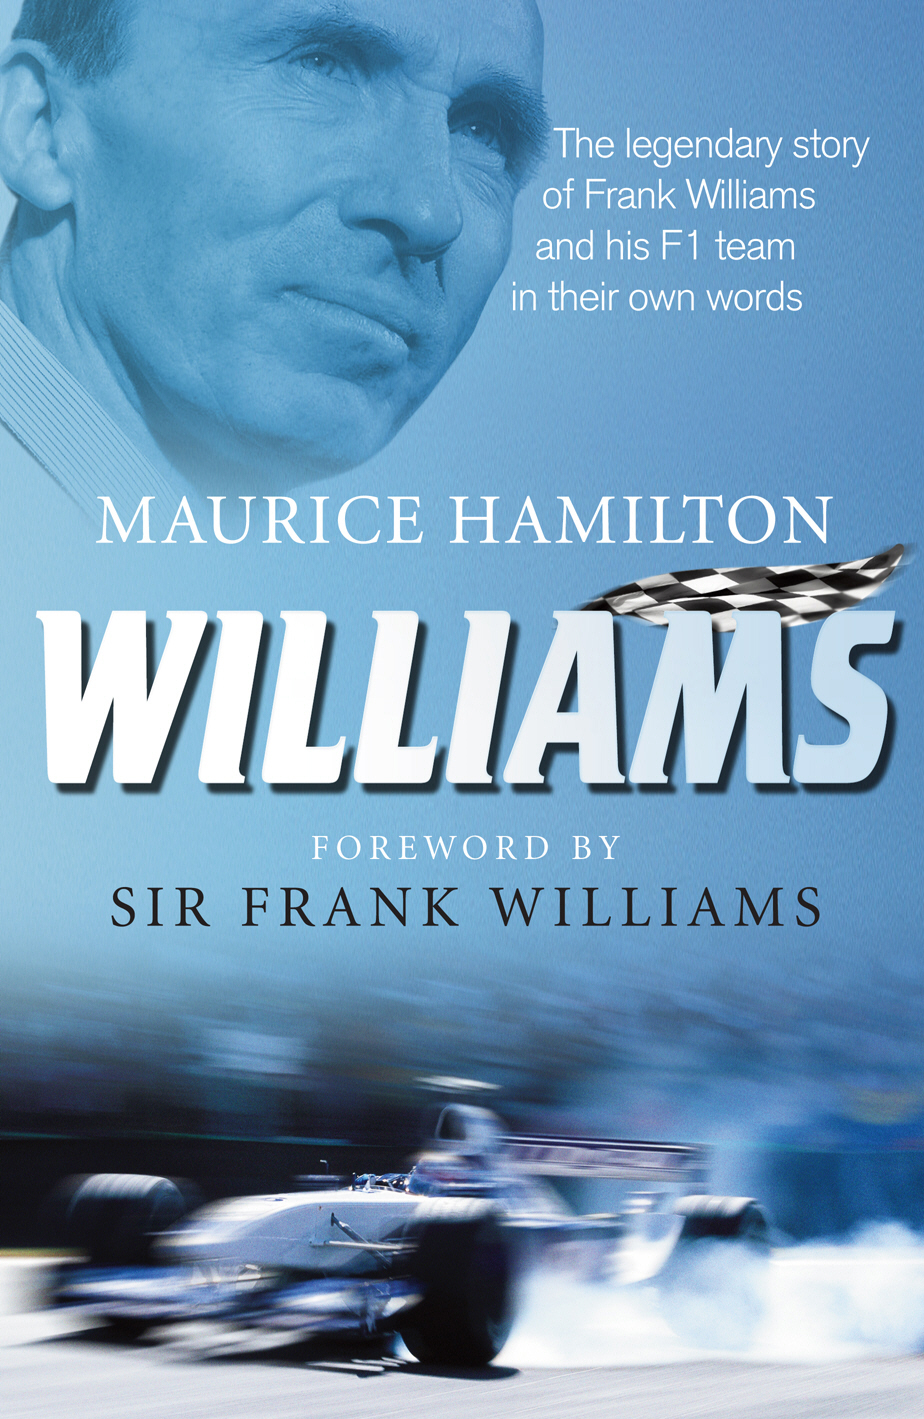 Williams The legendary story of Frank Williams and his F1 team in their own words